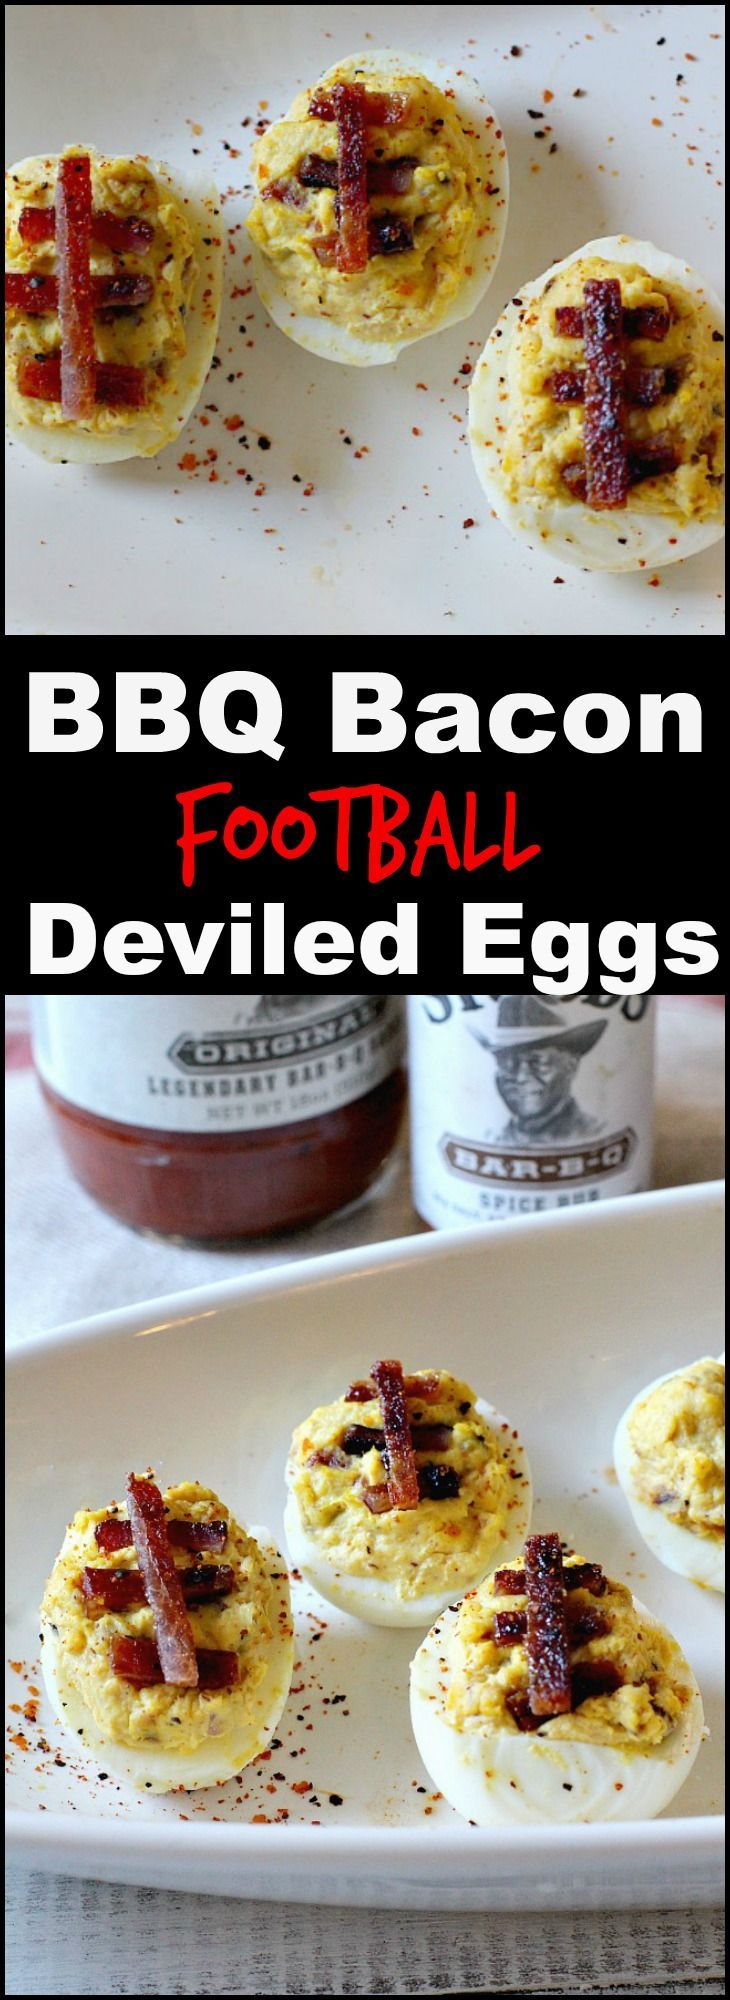 Kick up your next football tailgating appetizer idea with these easy BBQ Bacon Sour Cream Deviled Eggs. The crowd will go wild for these football themed appetizers. @stubbsbbqsauce